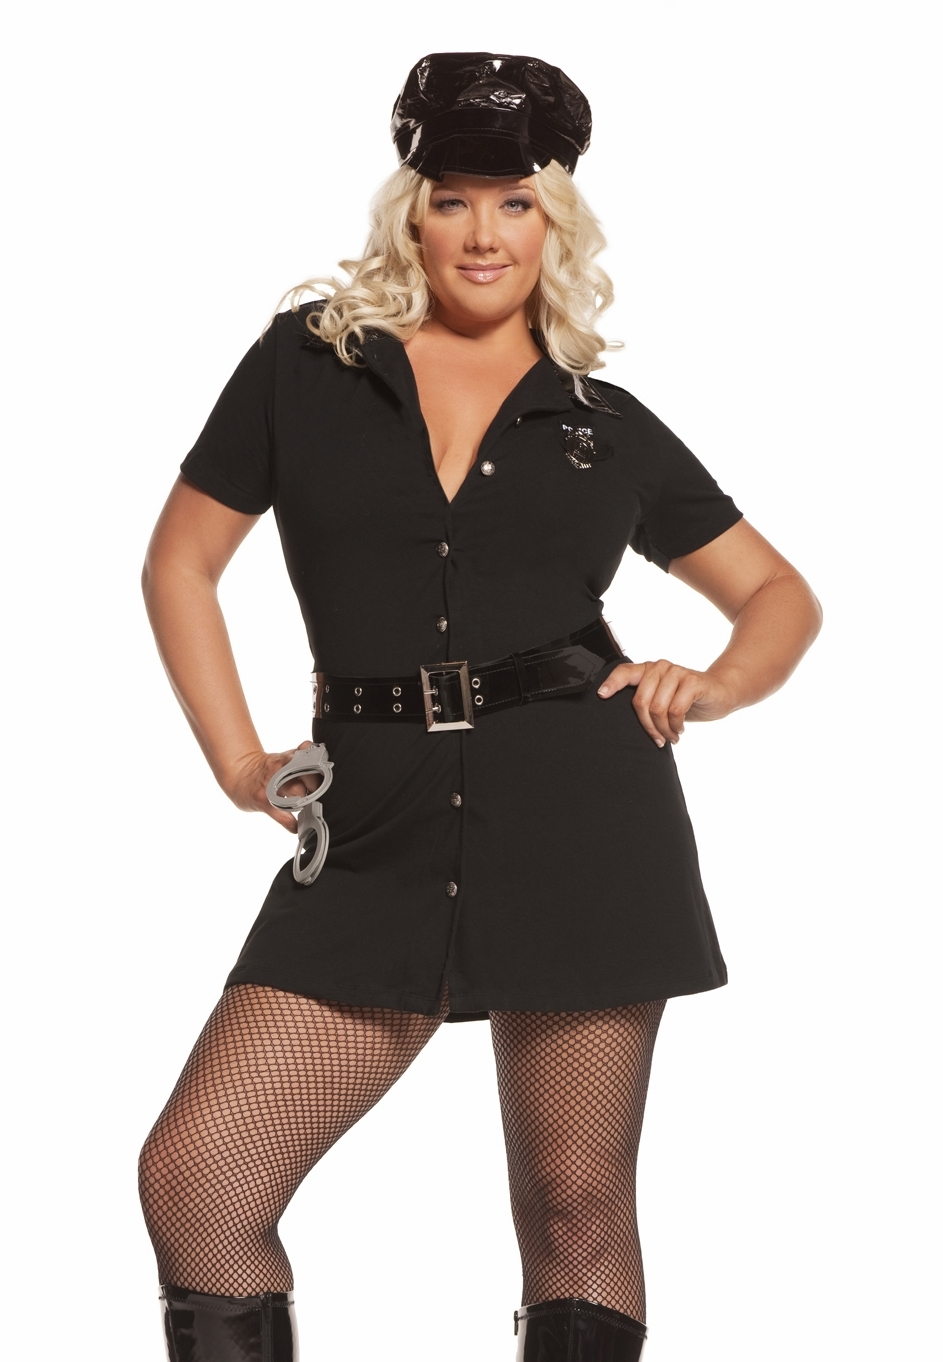 9463x Plus Size Female Officer Arrest Me Cop Costume by Elegant Moments